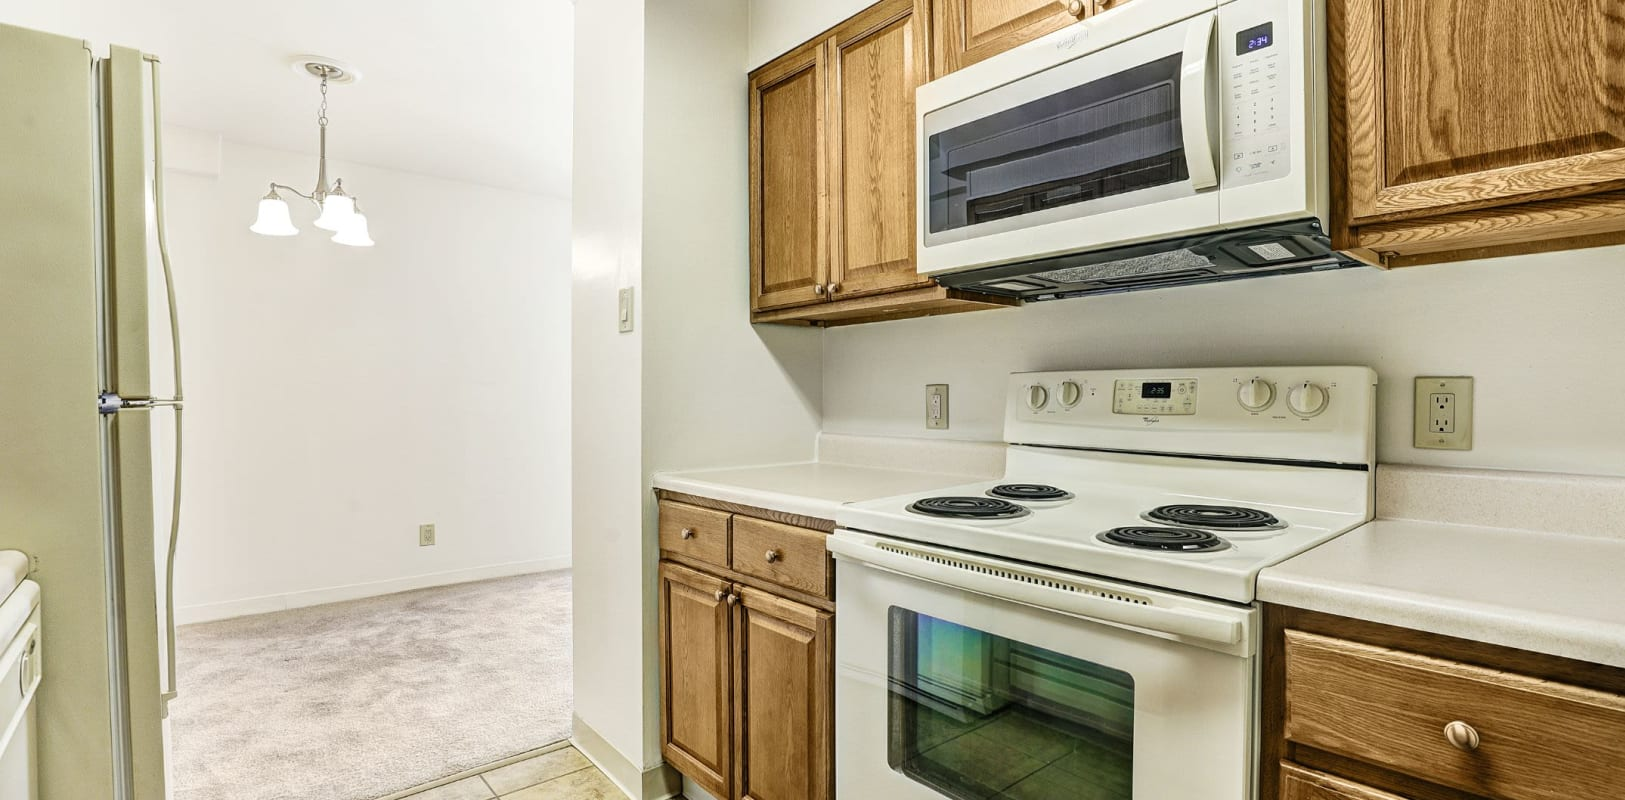 Bright kitchen with white appliances at Bethlehem Towers in Bethlehem, Pennsylvania